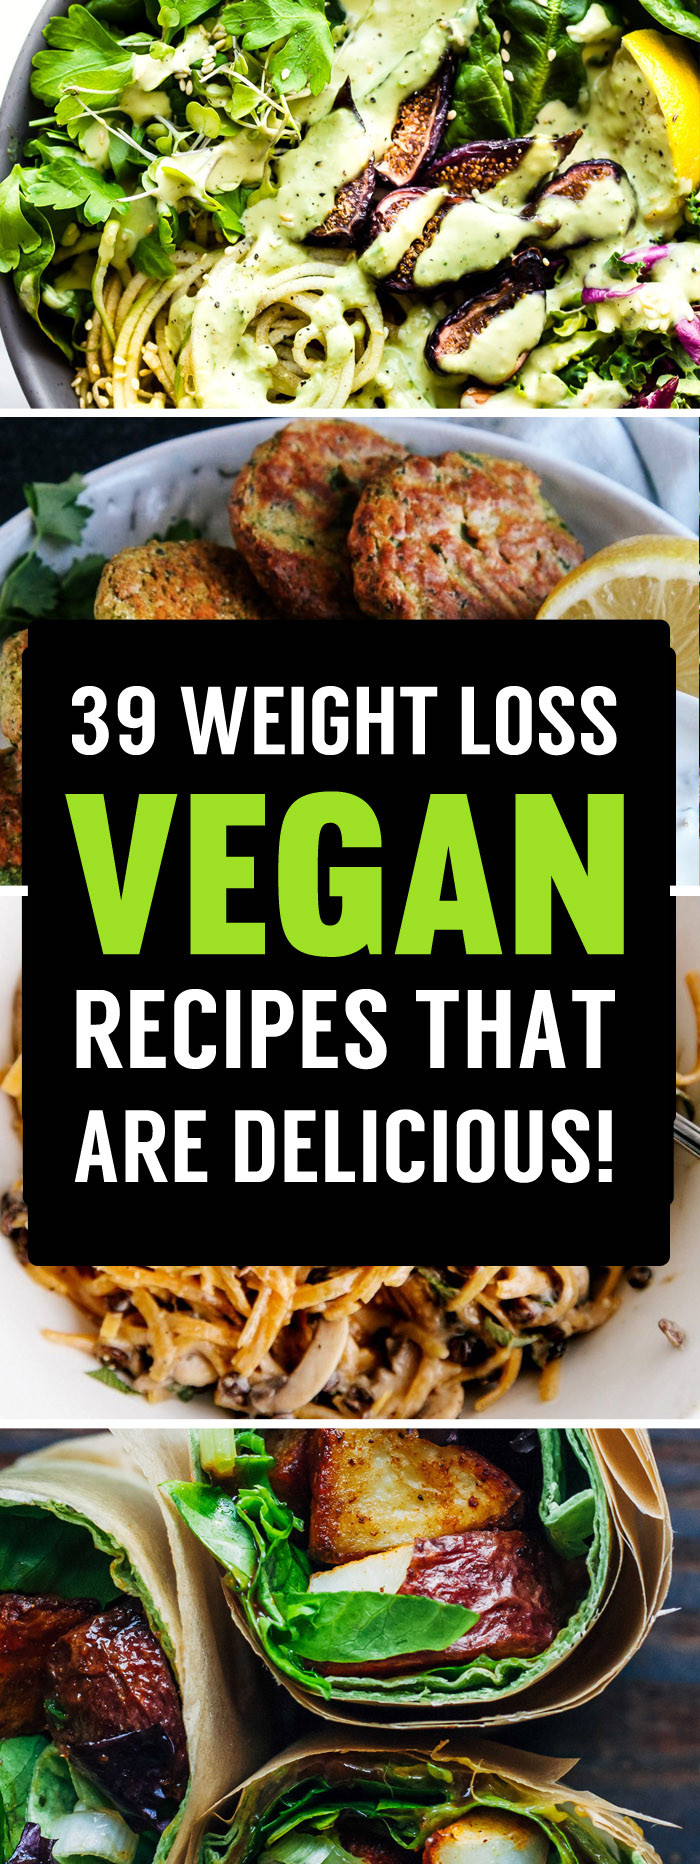 Healthy Vegetarian Recipes For Weight Loss  39 Delicious Vegan Recipes That Are Perfect For Losing